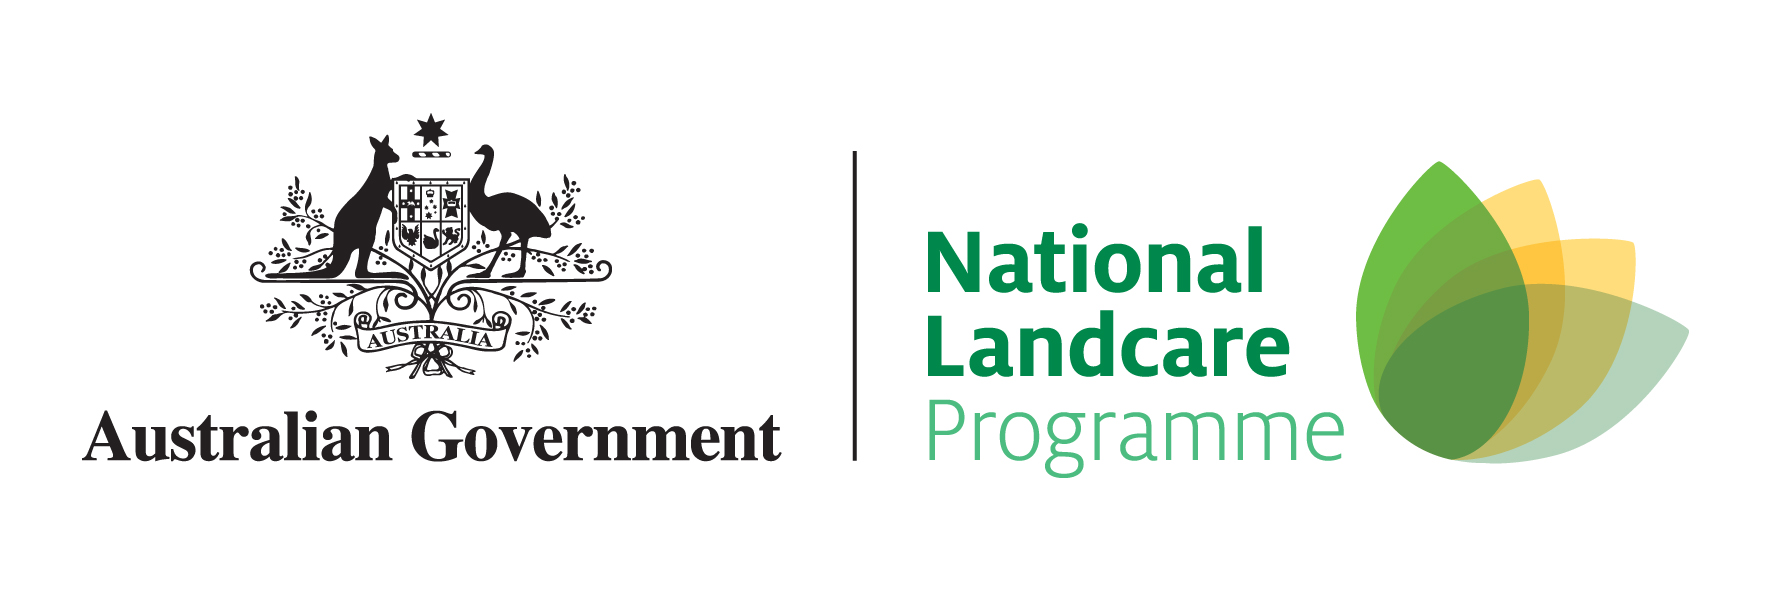 The What, Why & Wow! The Art of Project Planning workshops are part of the $25 million of National Landcare Programme investment to boost farm gate productivity and improve environmental health across NSW.